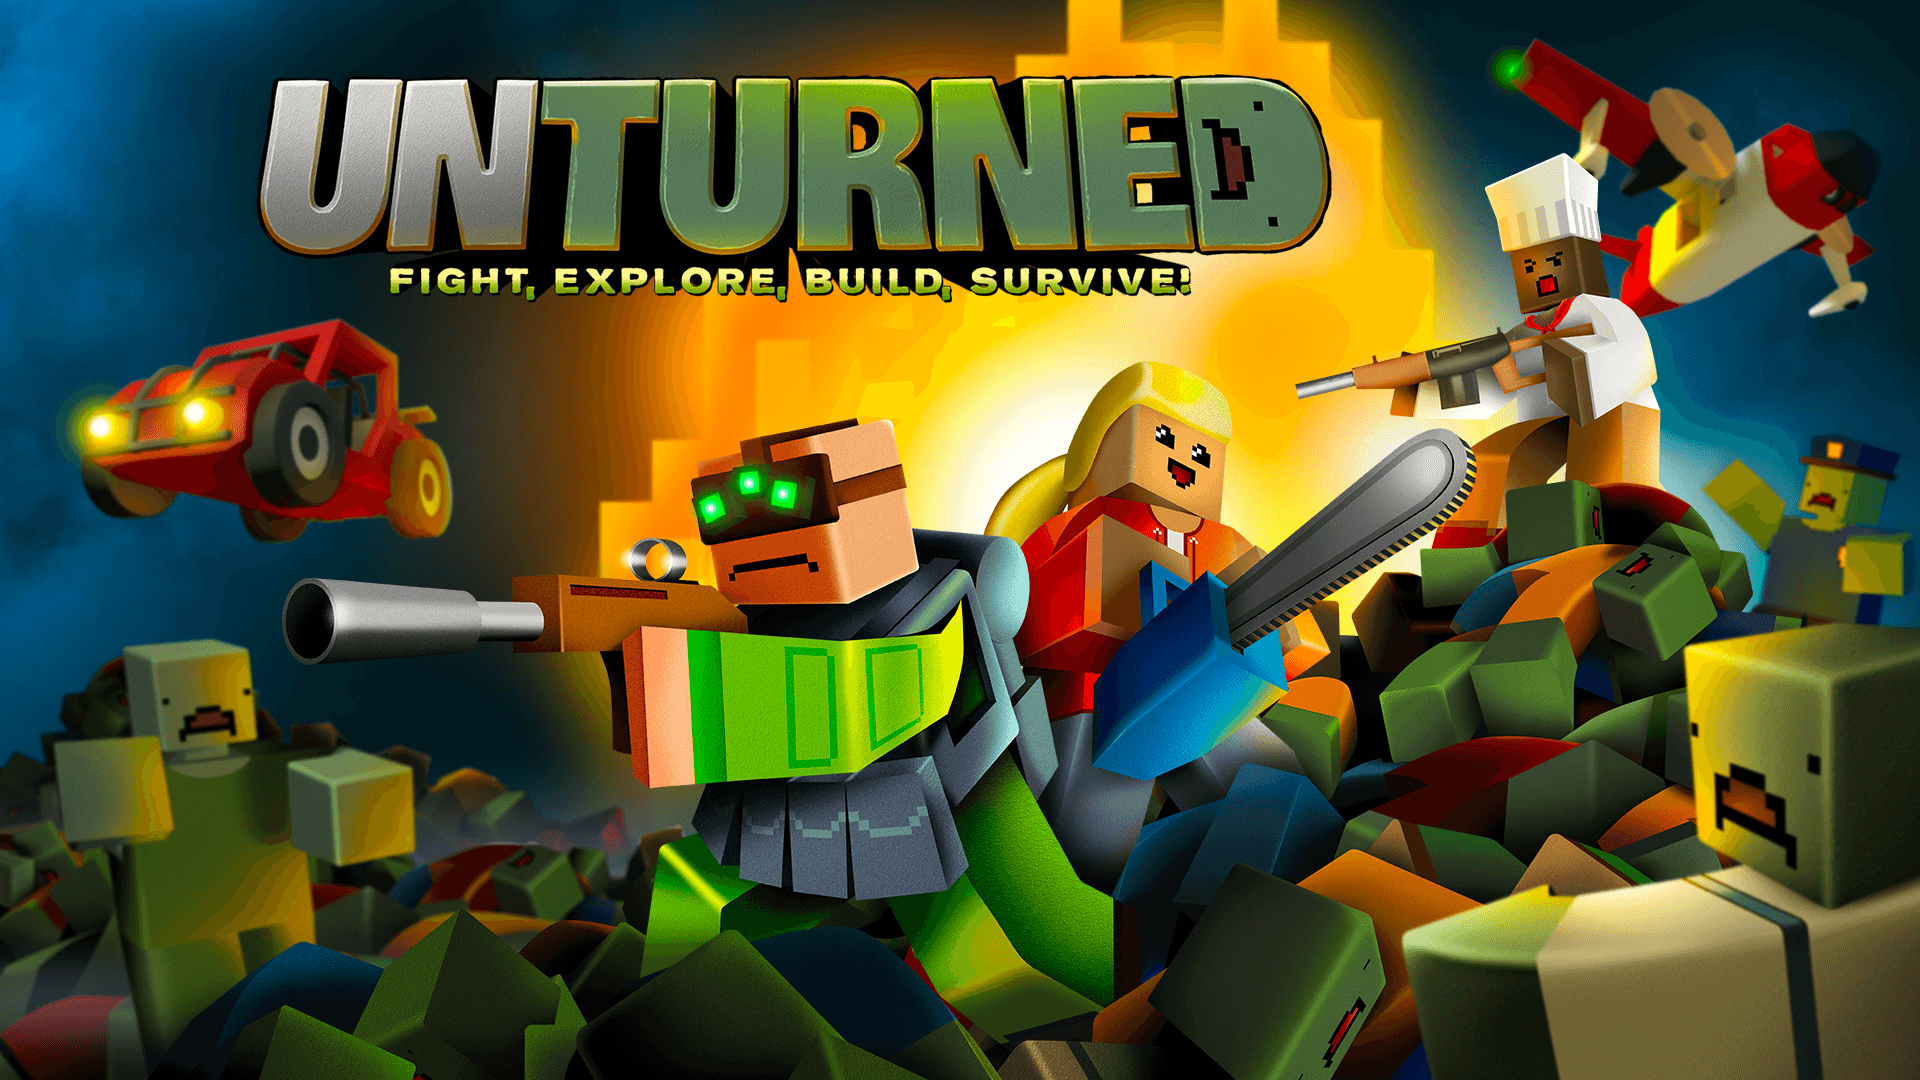 Unturned Launches on PS4 and Xbox One Next Month